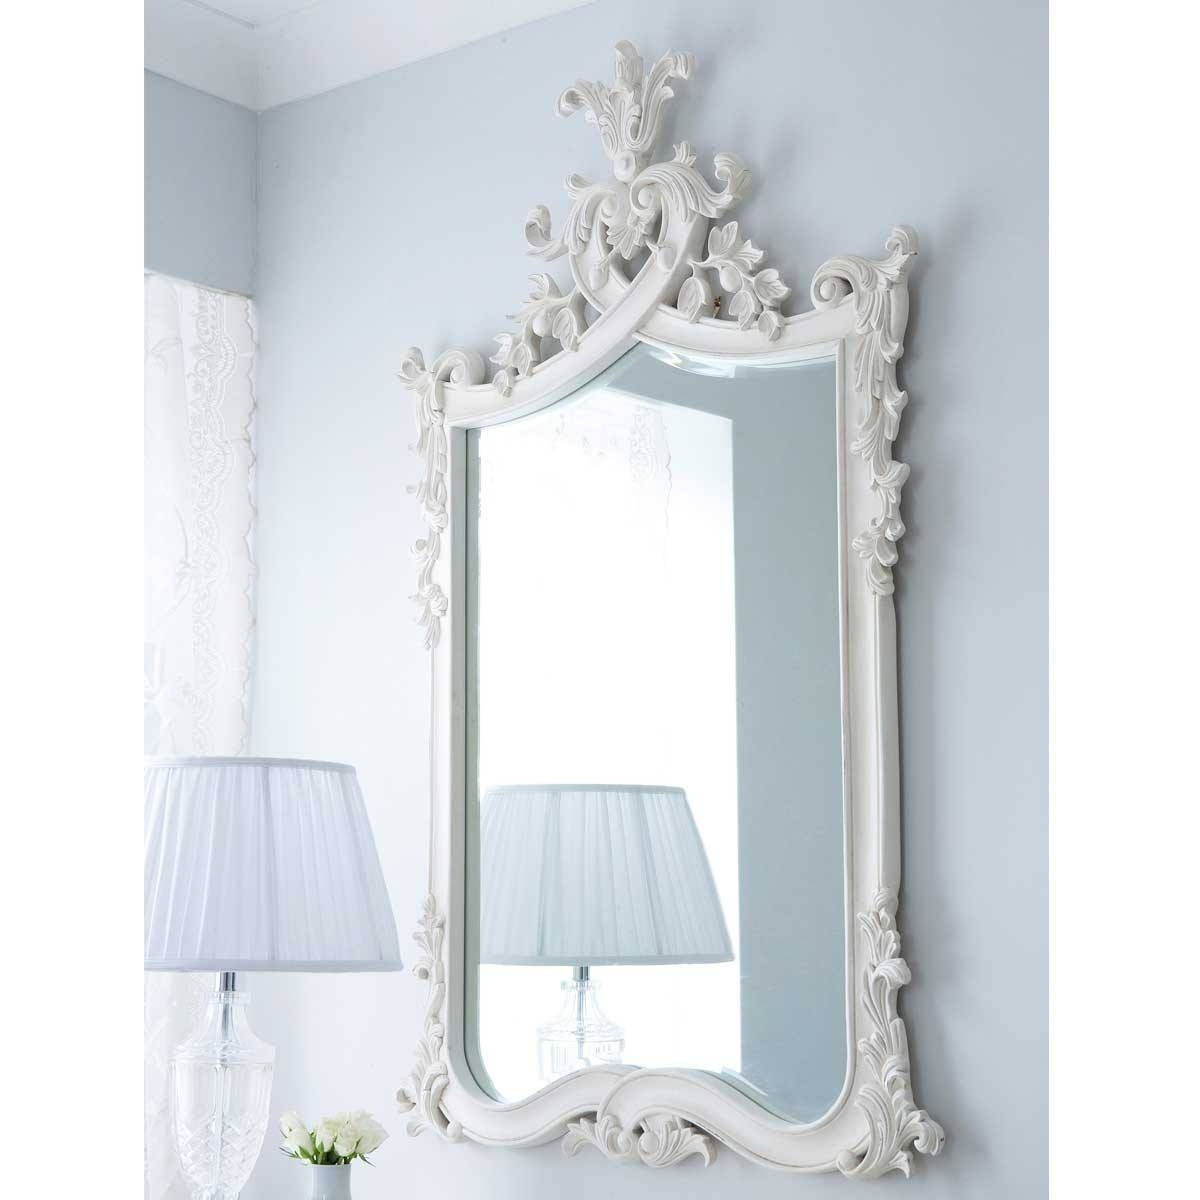 Provencal Heart Top White Mirror | Luxury Mirror Intended For French Wall Mirrors (View 17 of 25)